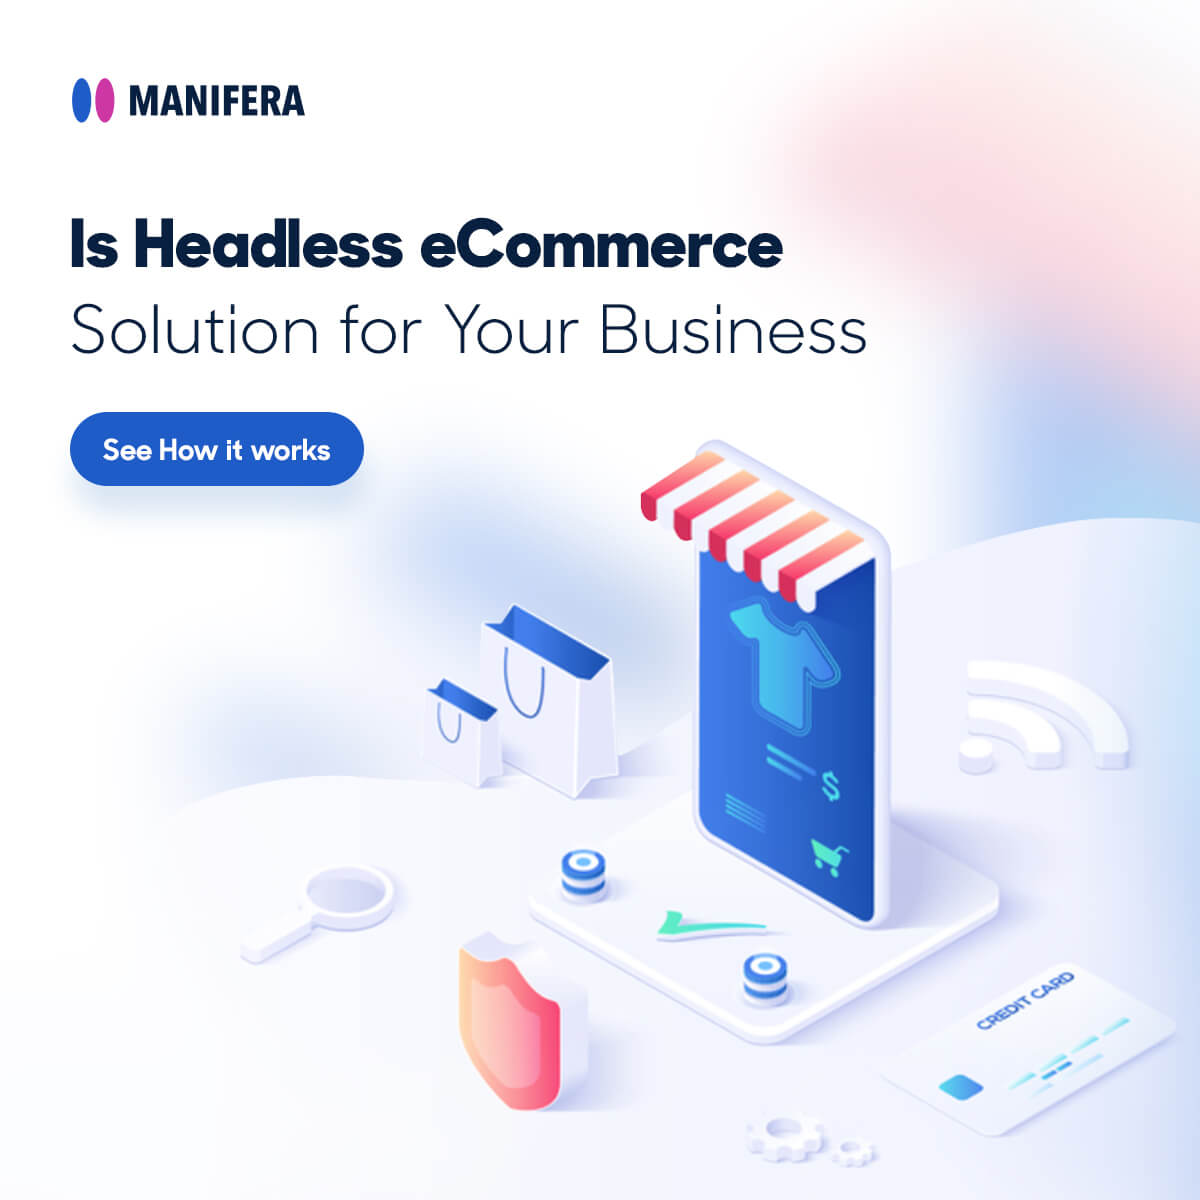 Is Headless eCommerce Solution For Your Business?